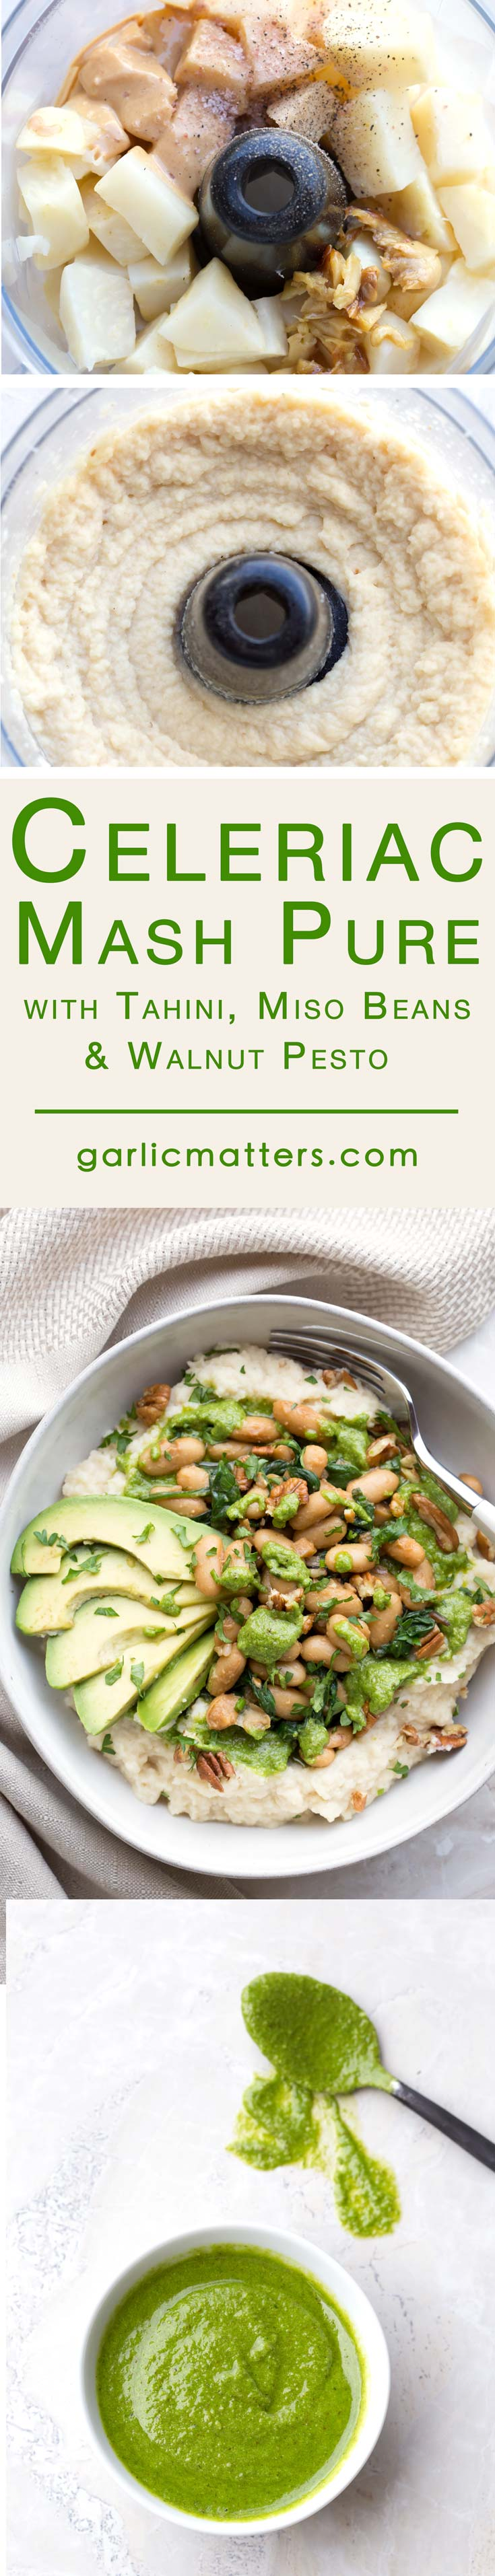 Celeriac Mash With Tahini, Miso Beans and Walnut Pesto Recipe Pinterest Image Compilation